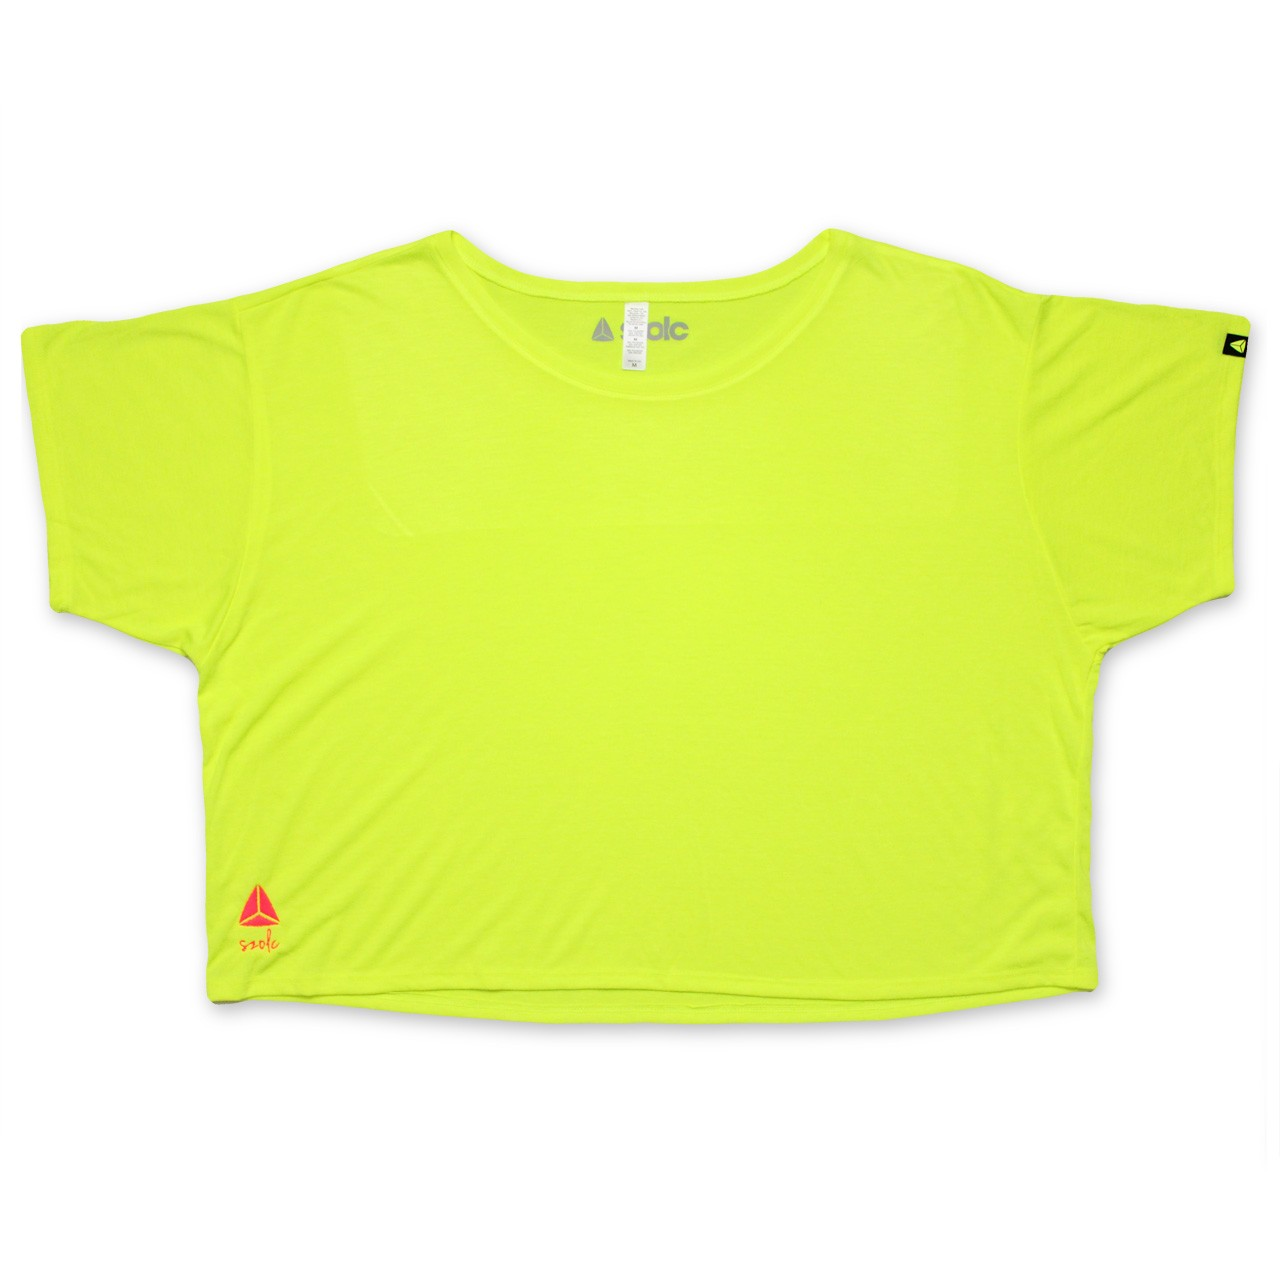 Fluor Yellow Embroidered Tshirt